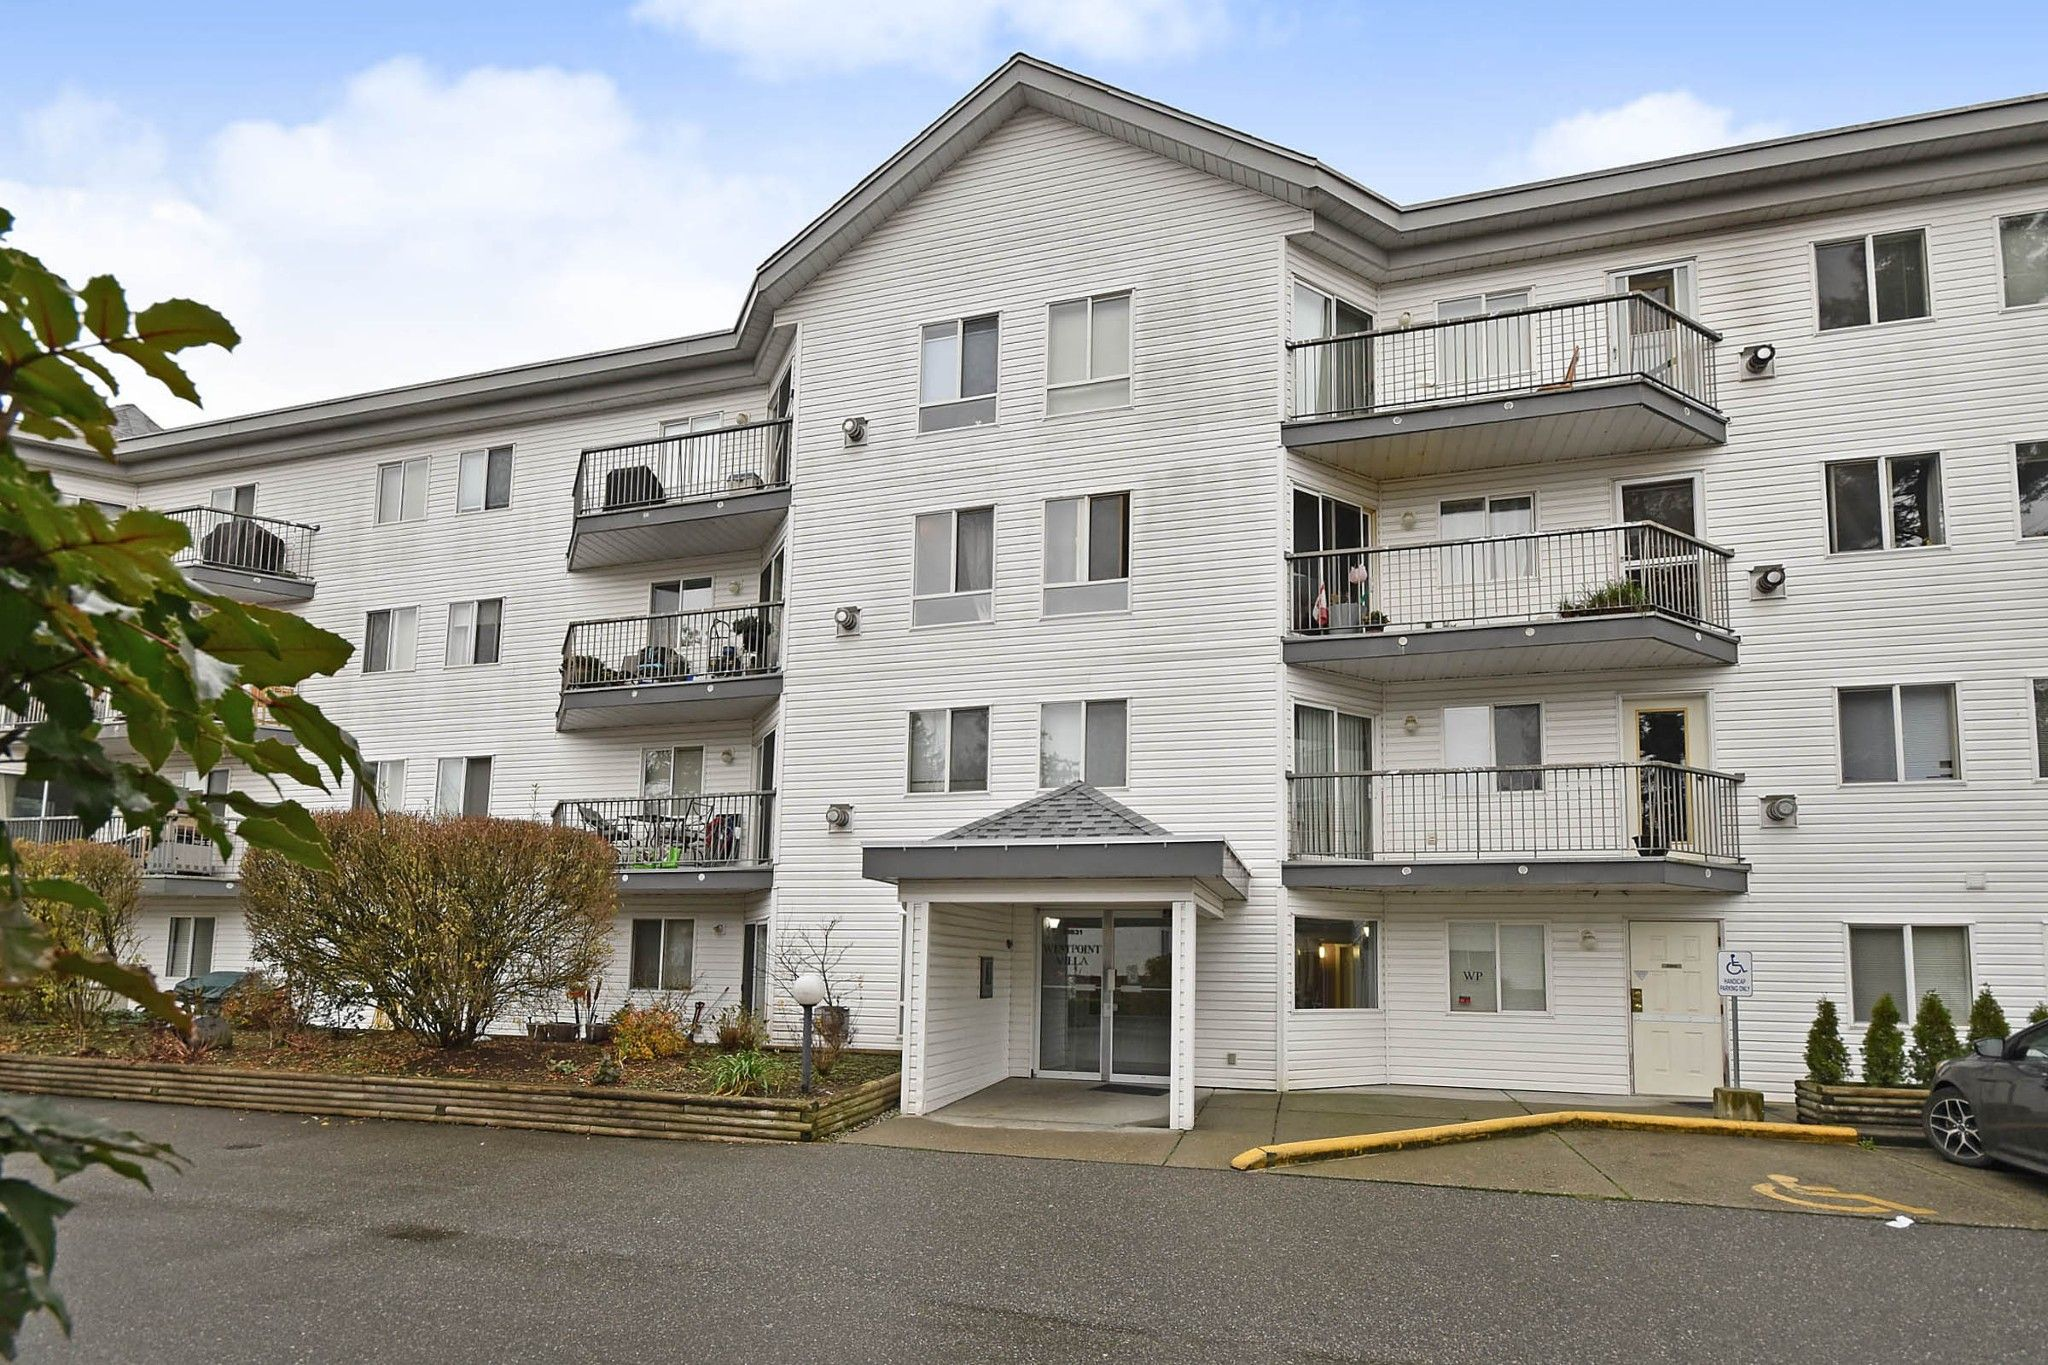 """Main Photo: 311 31831 PEARDONVILLE Road in Abbotsford: Abbotsford West Condo for sale in """"West Point Villa"""" : MLS®# R2564041"""